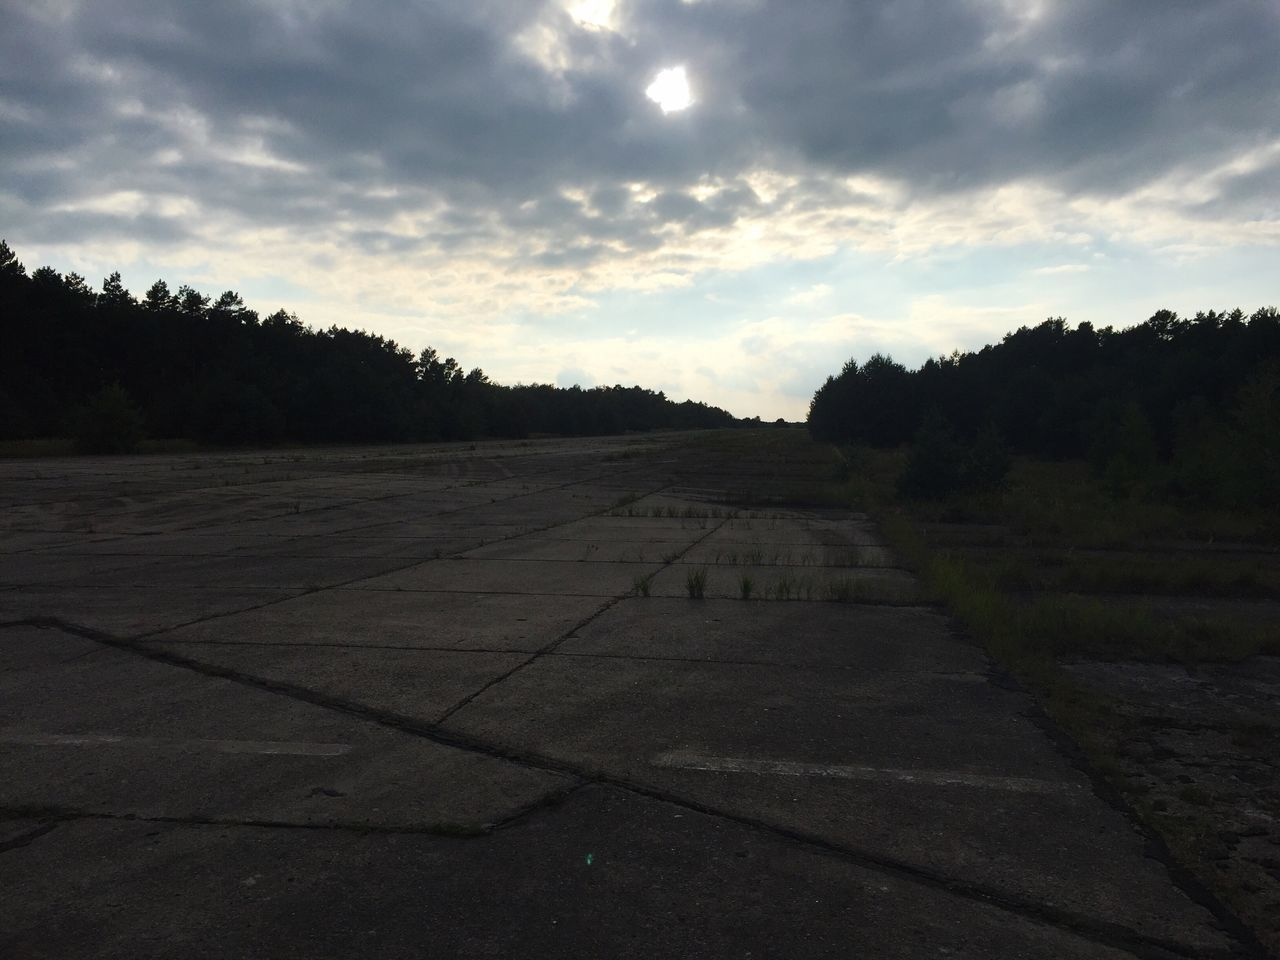 Old Airport Runway No People Russian Udssr